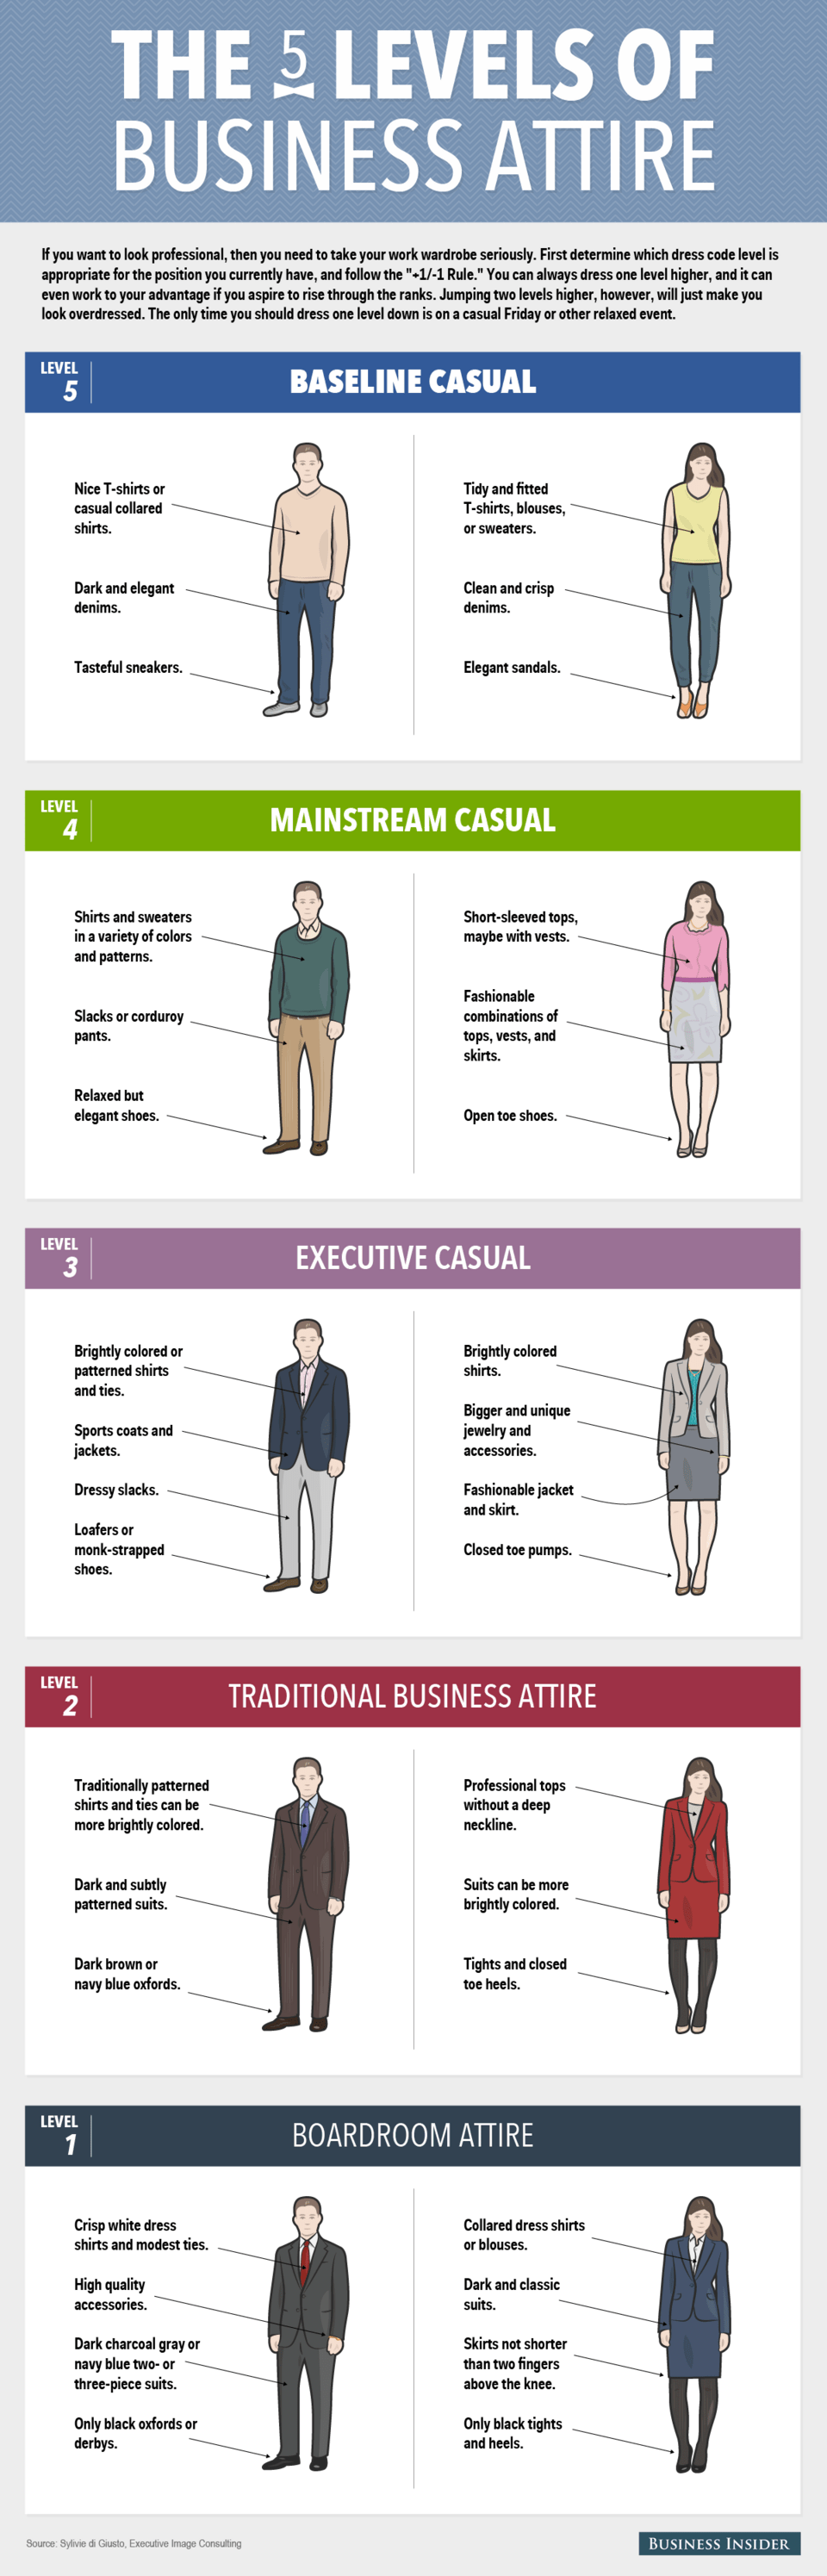 https://www.iefimerida.gr/sites/default/files/styles/in_article/public/archive-files/dress_codes_infographic_02.png?itok=bL4CKV--